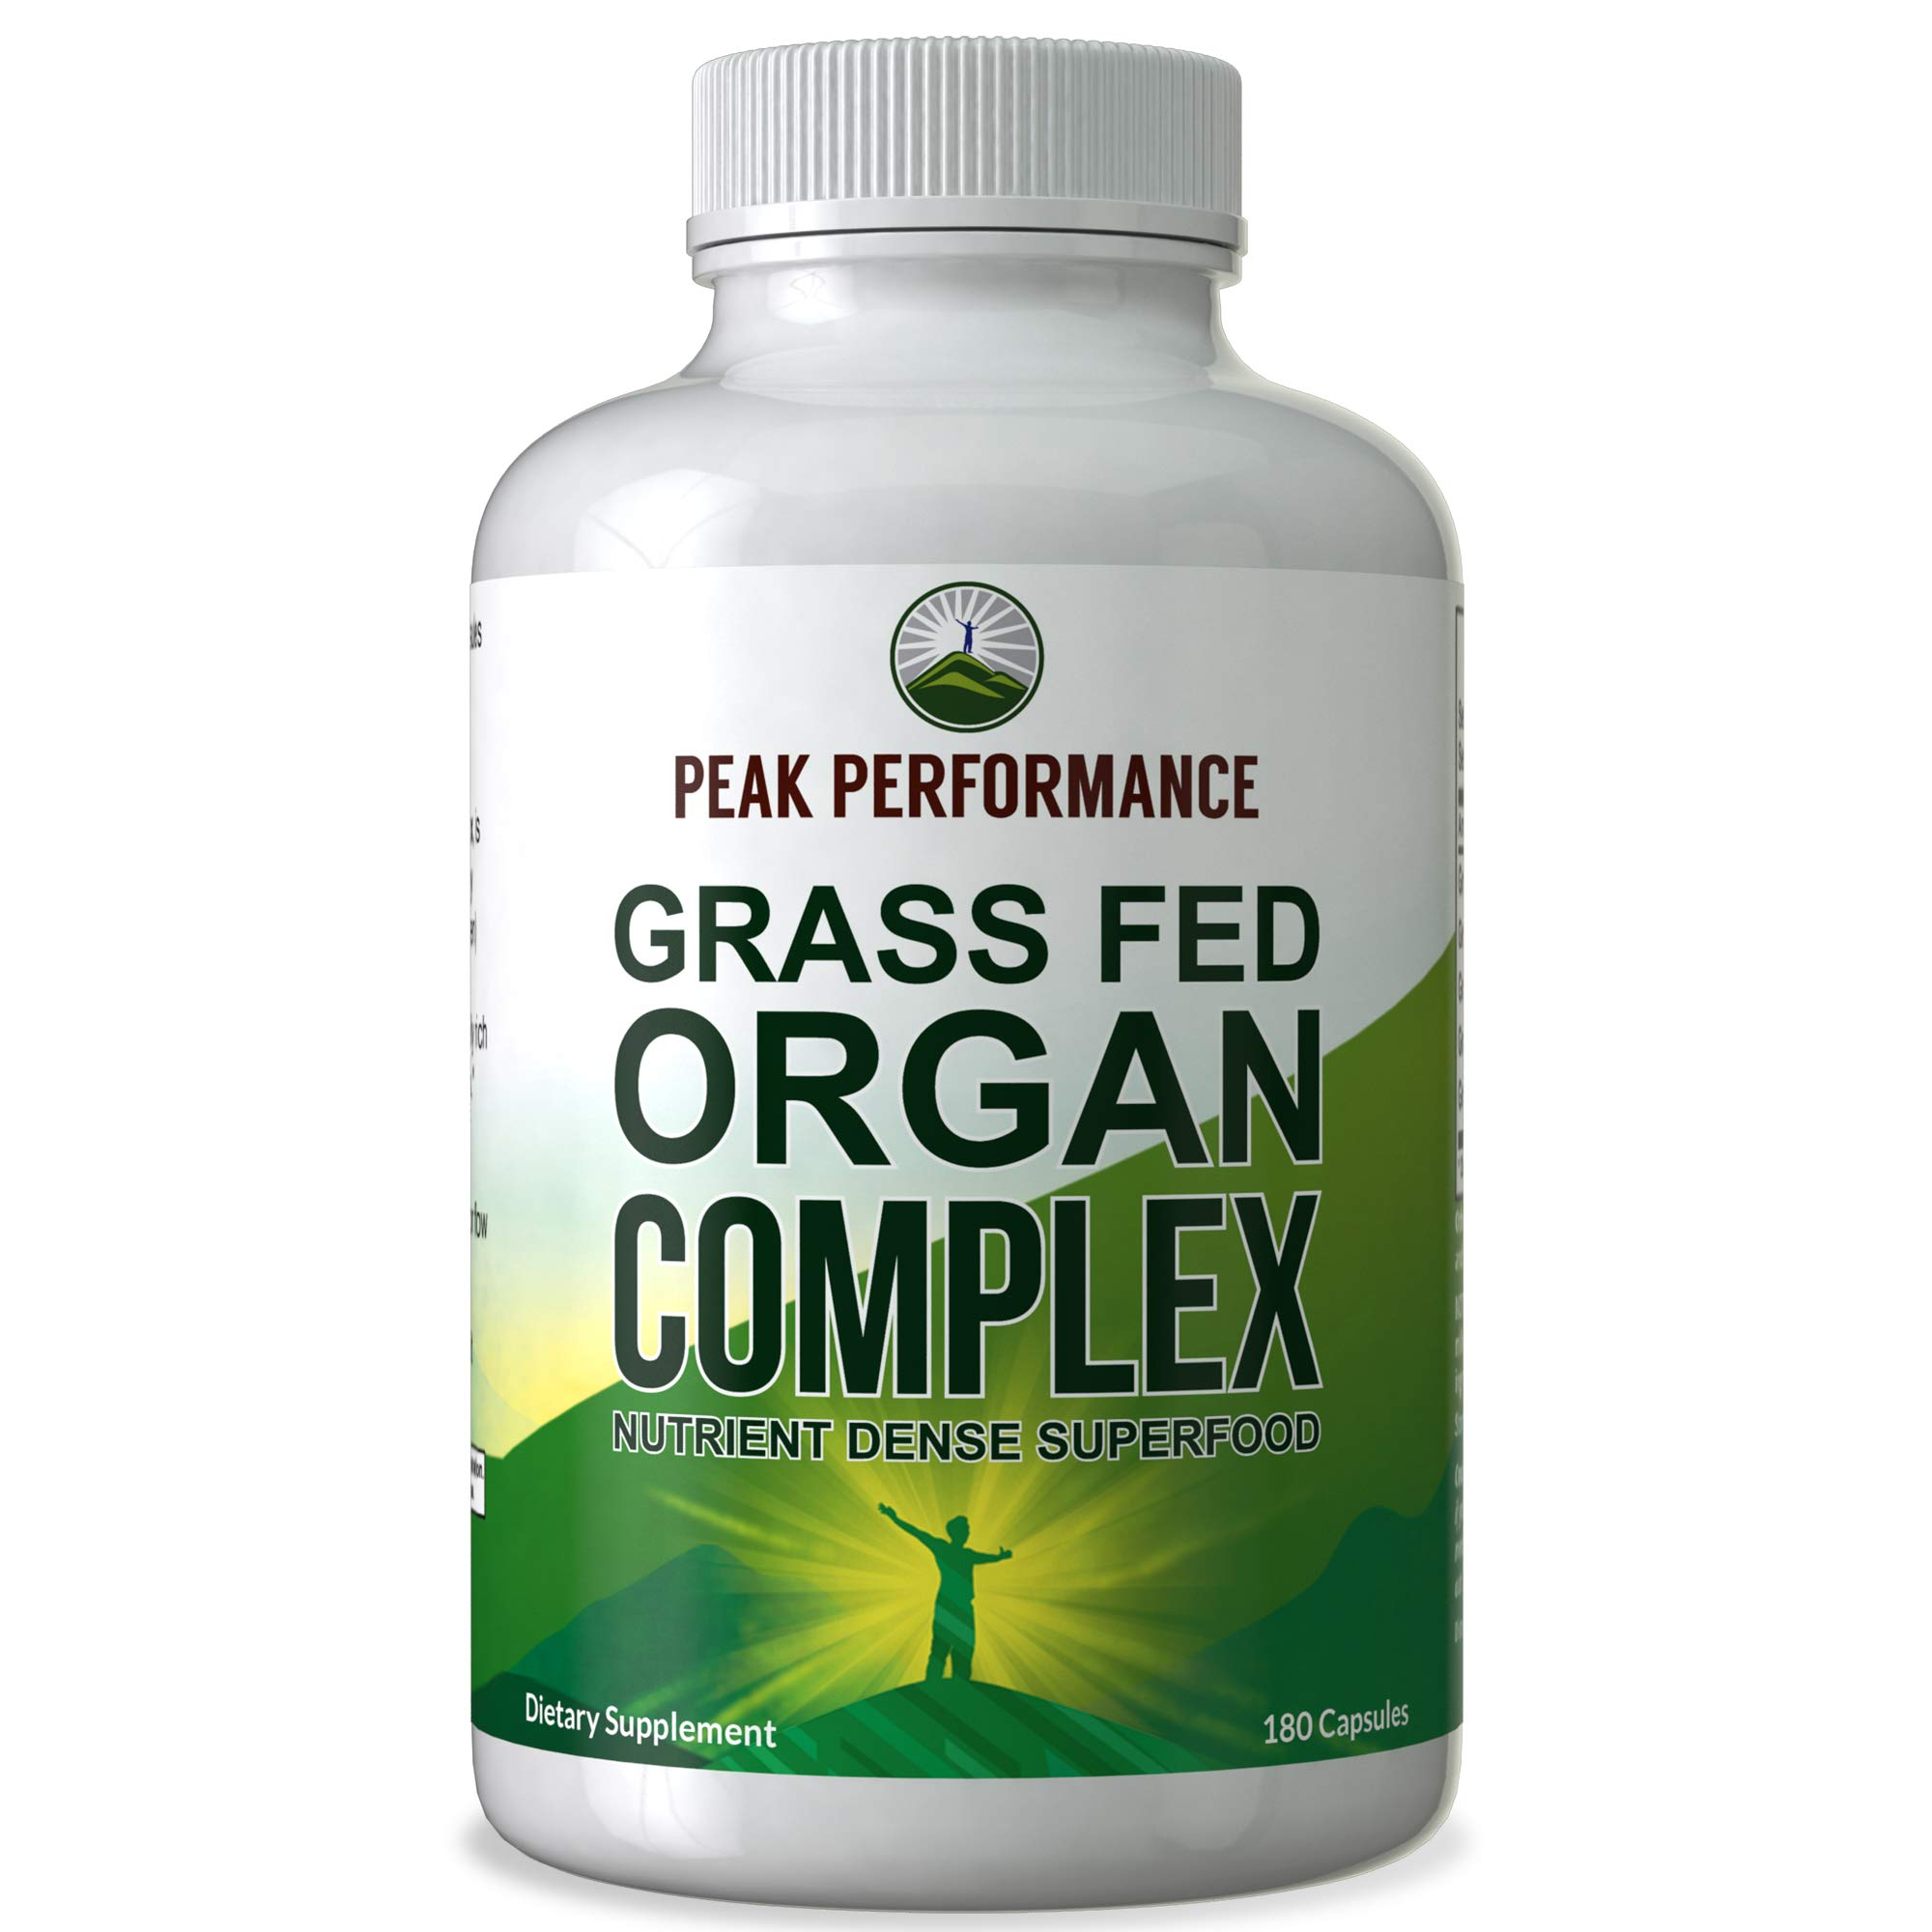 Grass Fed Beef Organ Complex (180 Capsules) by Peak Performance. Desiccated Organs Superfood Pills Rich in Antioxidants, Enzymes, Vitamin B12. Made from Liver, Heart, Kidney, Pancreas, Spleen by Peak Performance